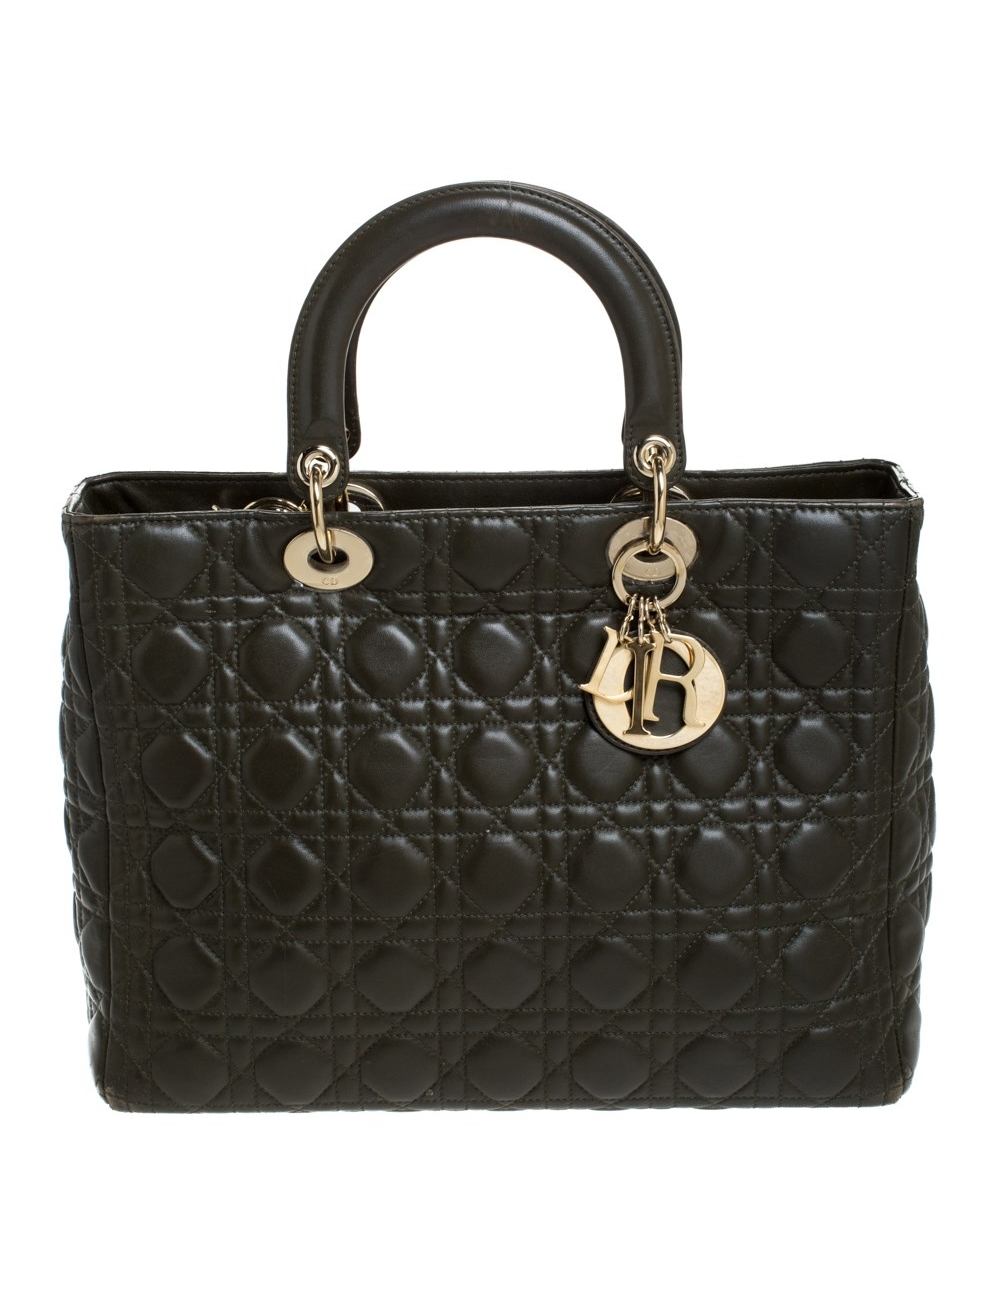 The Lady Dior tote is a Dior creation that has gained recognition worldwide and is today a coveted b